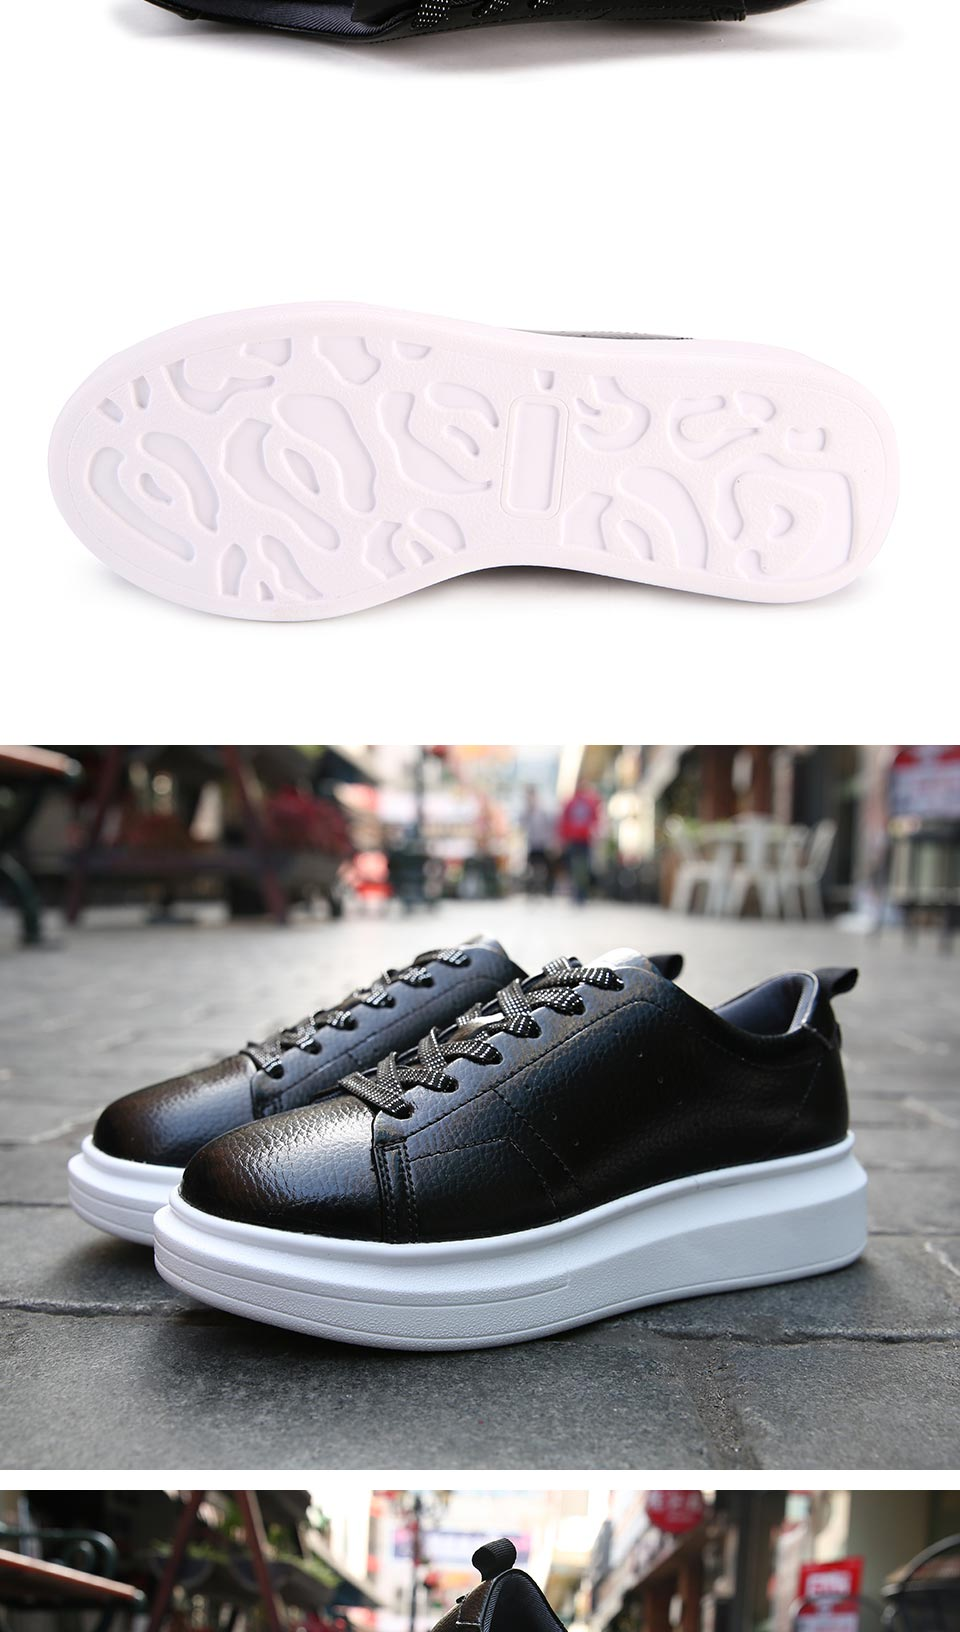 BONA New Classics Style Women Skateboarding Shoes Lace Up Femme Athletic Shoes Microfiber Lady Outdoor Jogging Shoes Comfortable